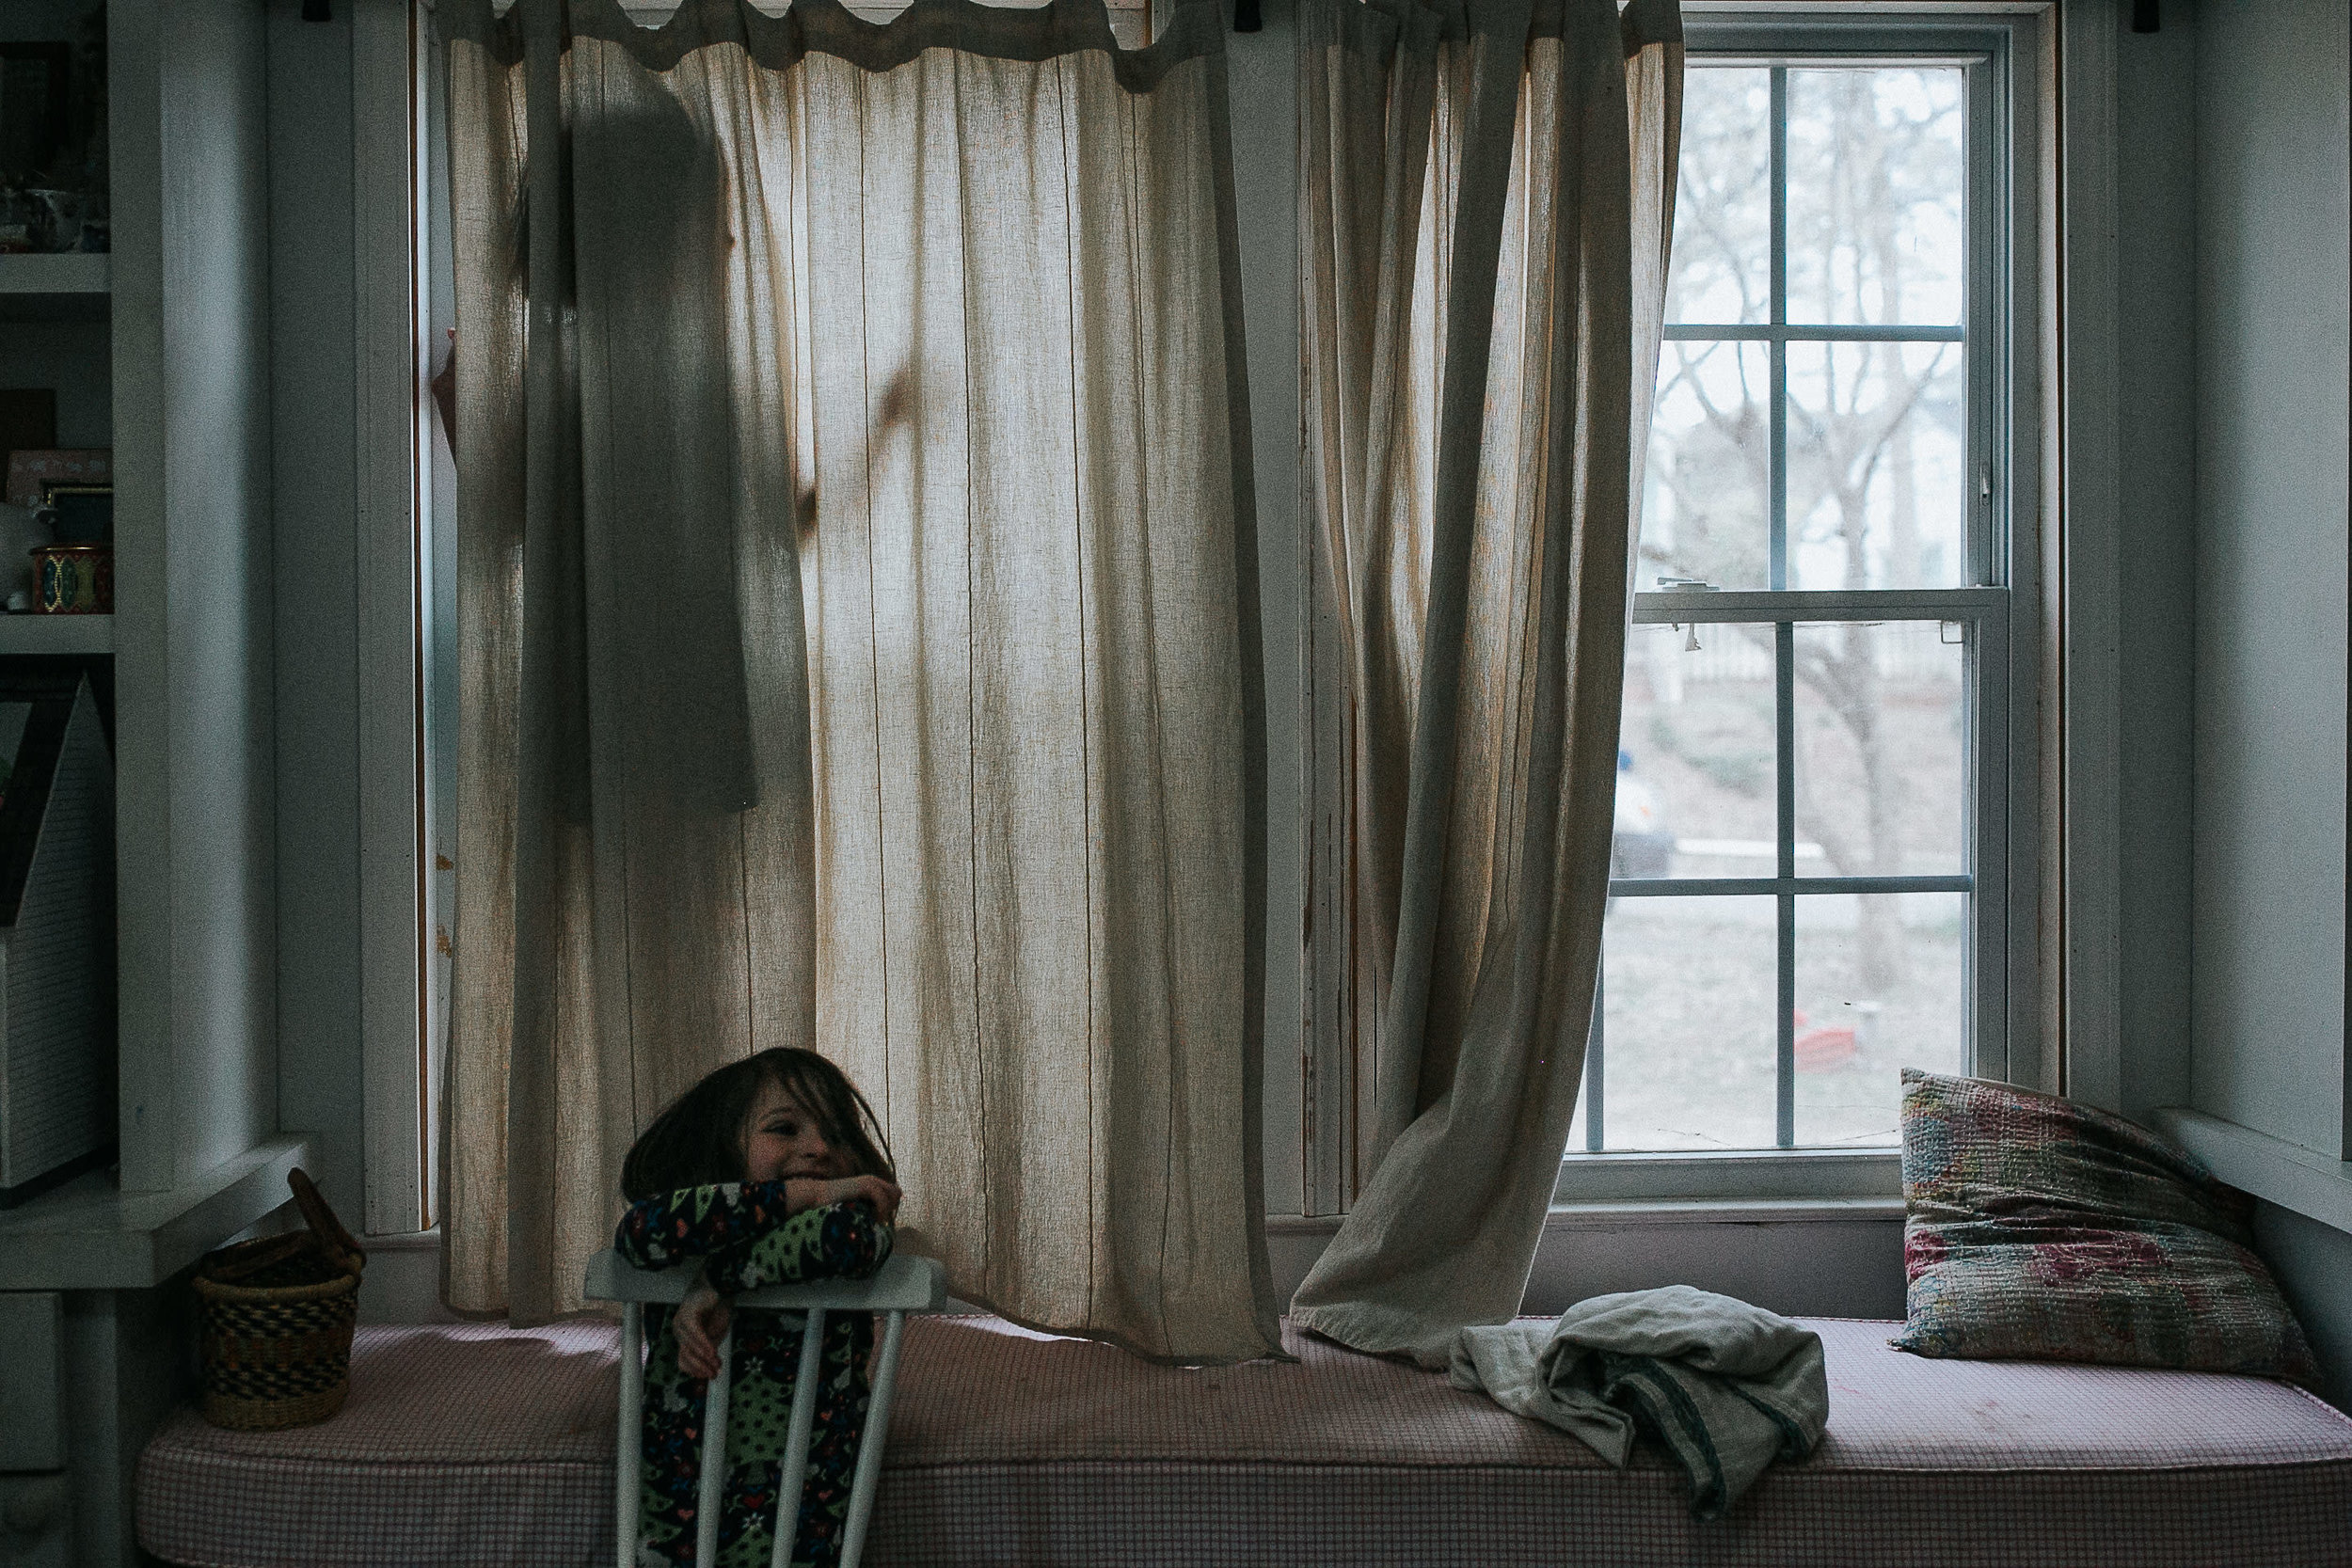 A girl stands in a window behind a curtain and another girl smiles as she leans on a chair in front of the window